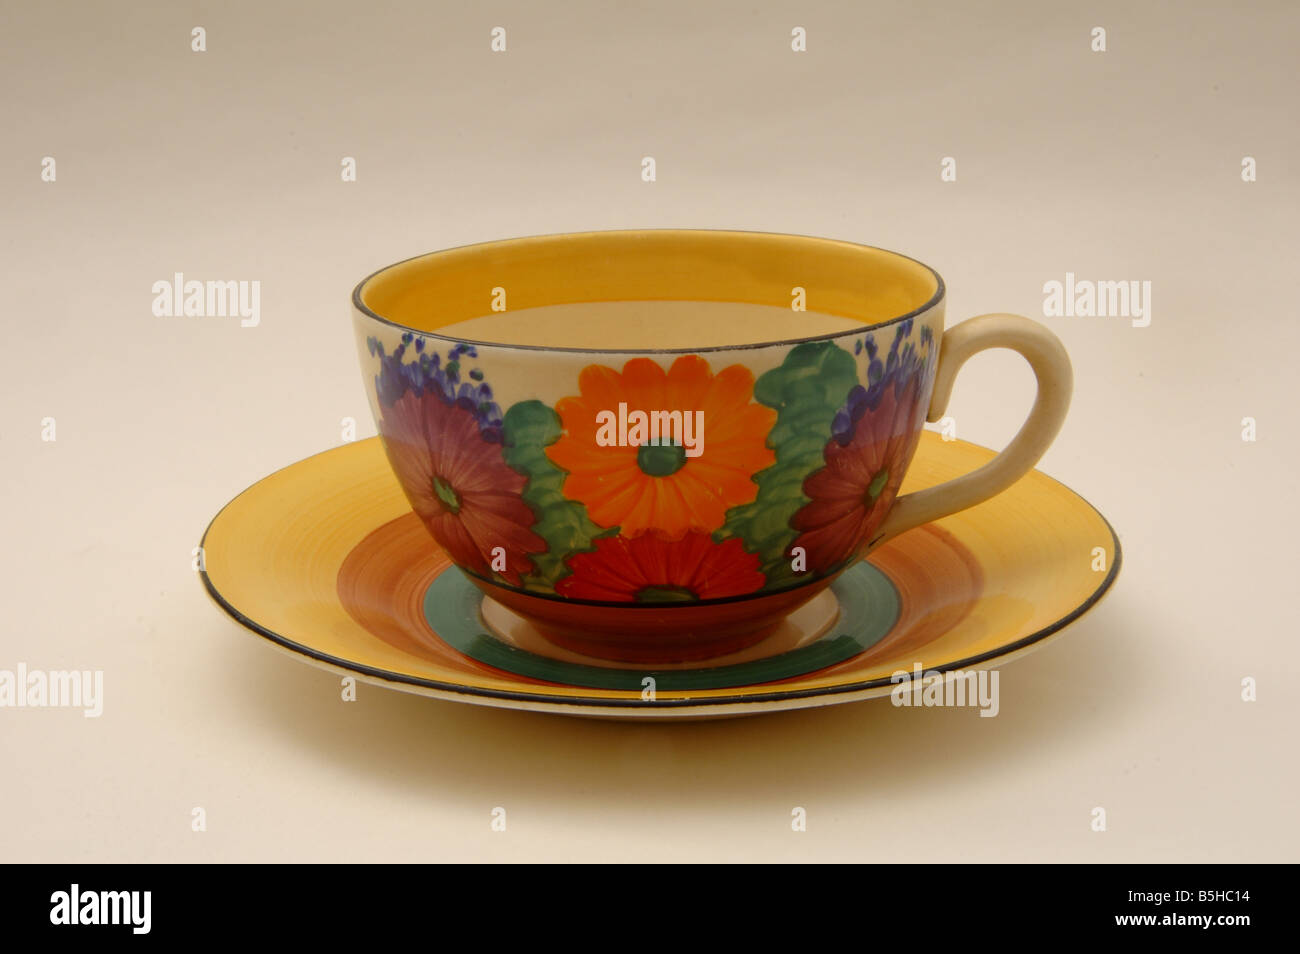 Clarice Cliff cup and saucer - Stock Image